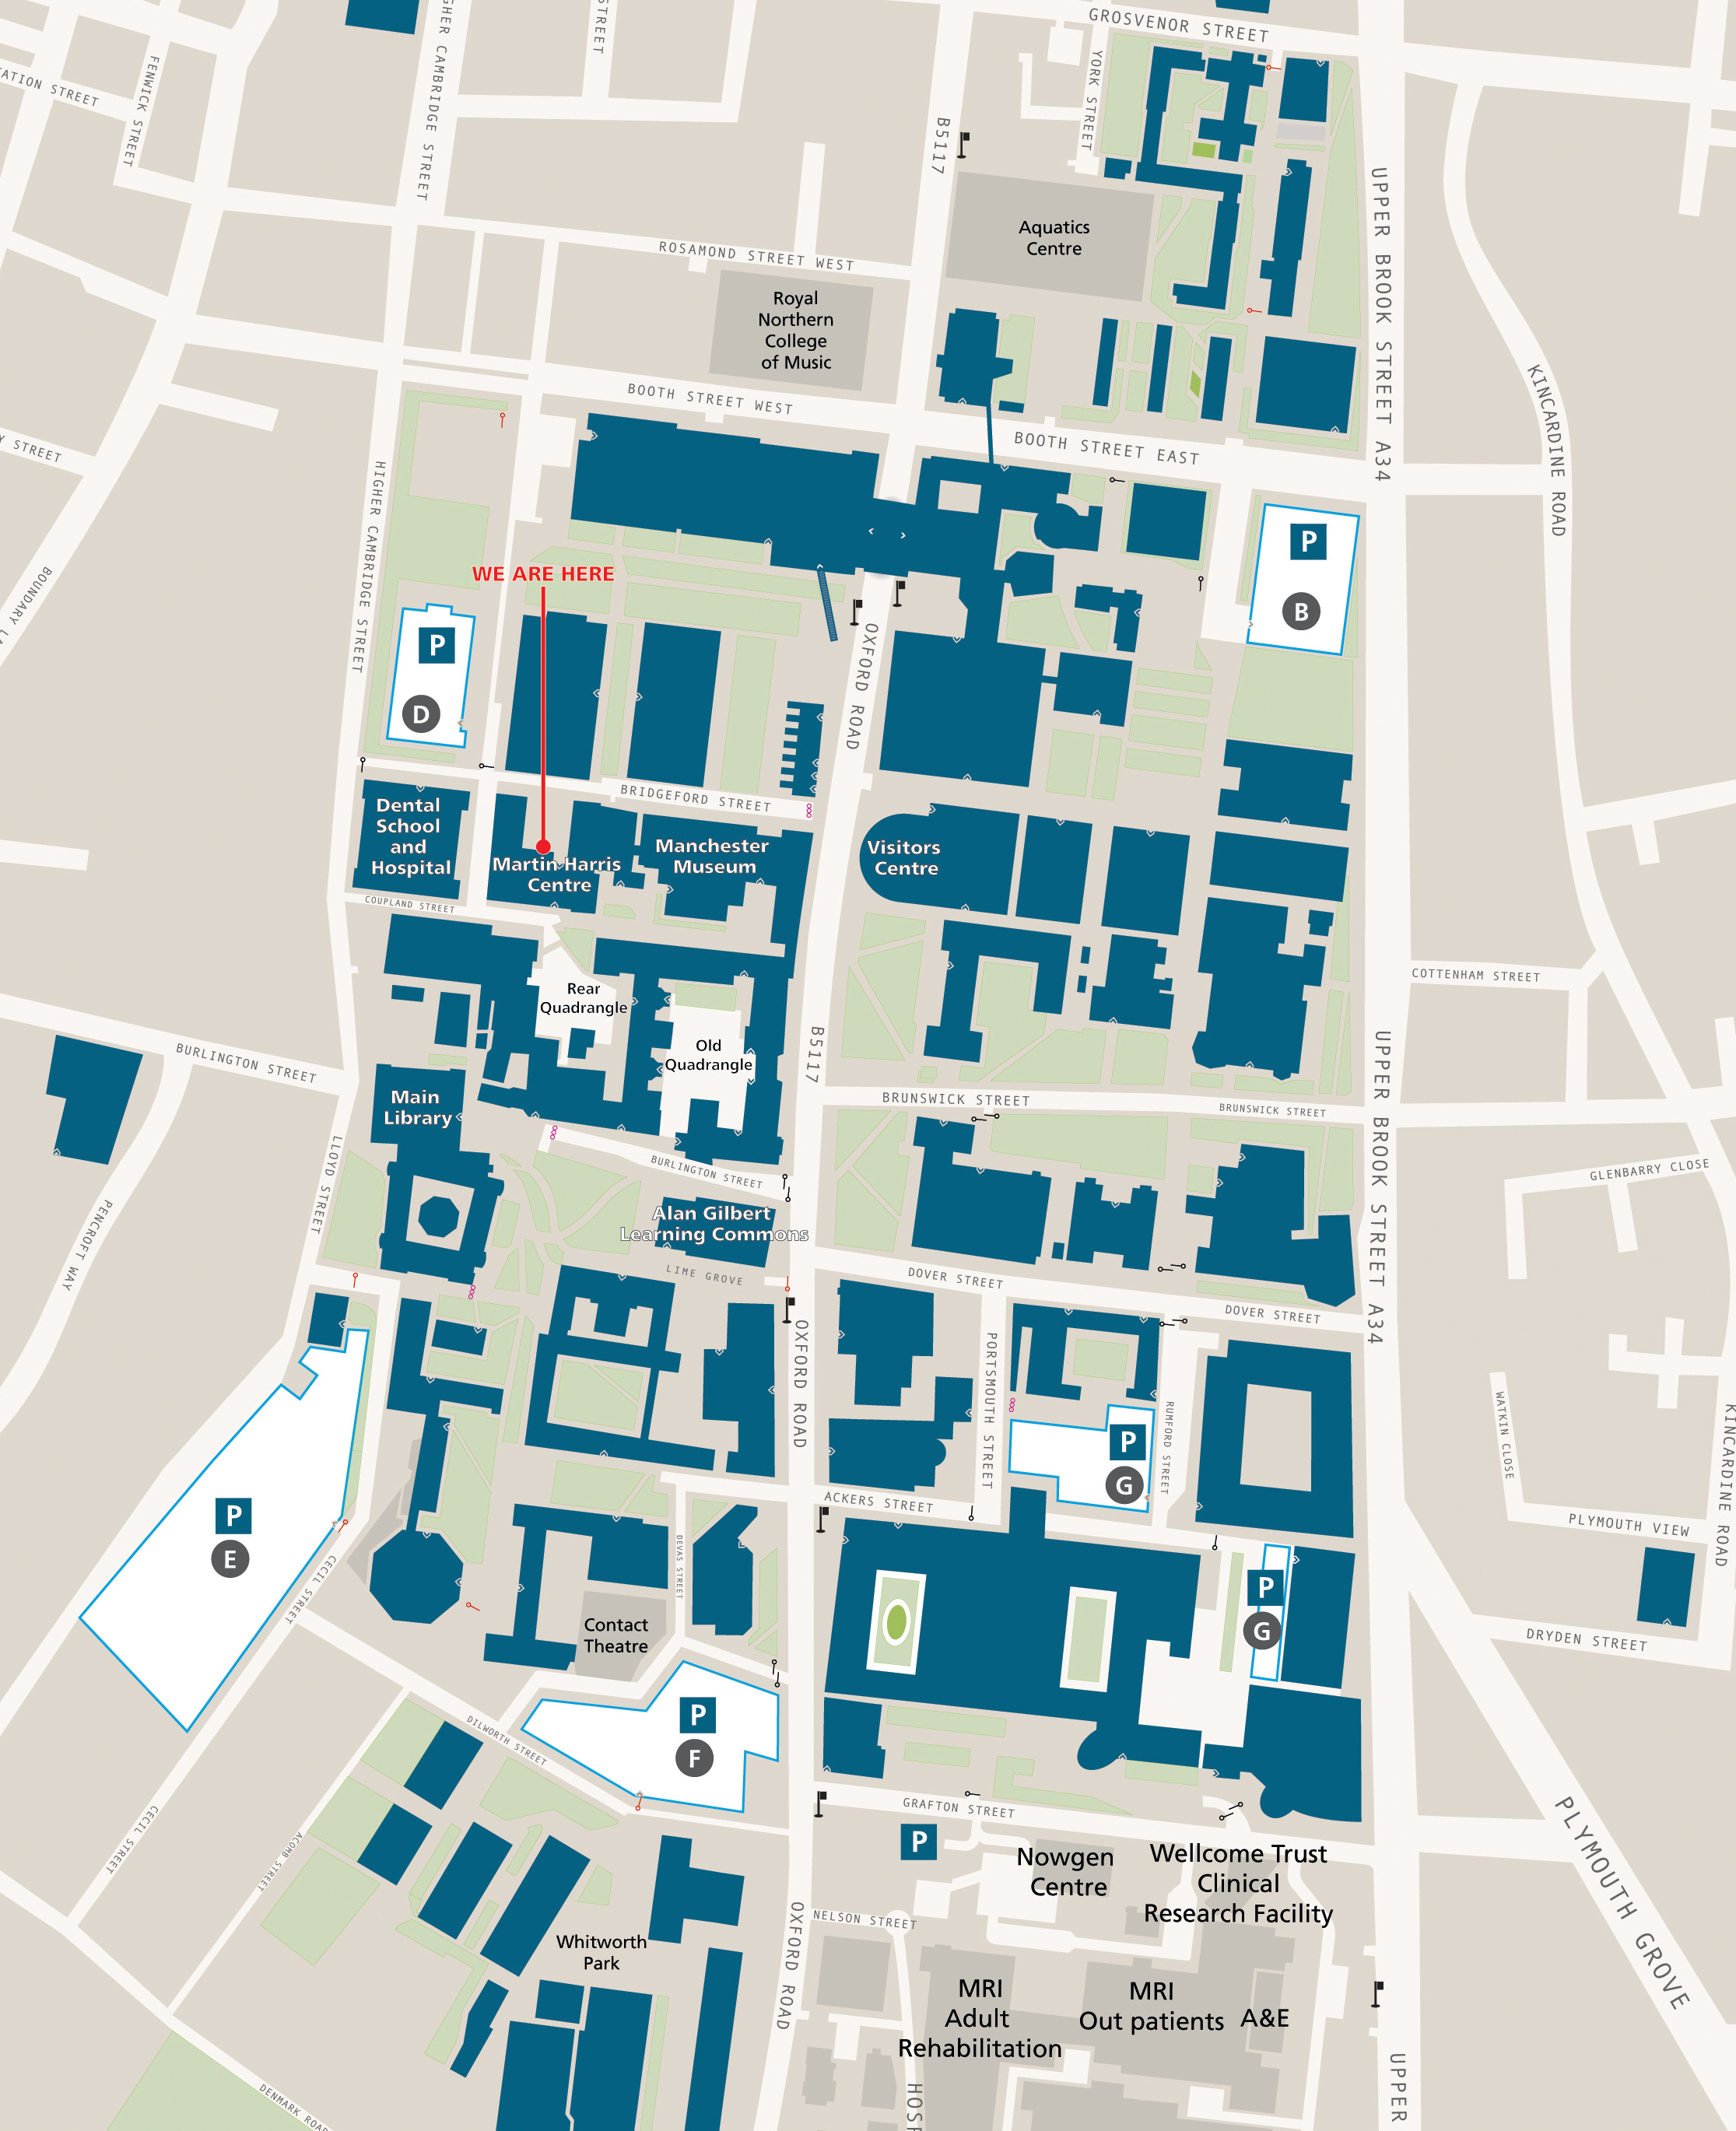 Manchester University Campus Map Manchester University Campus Map | Map Of Us Western States